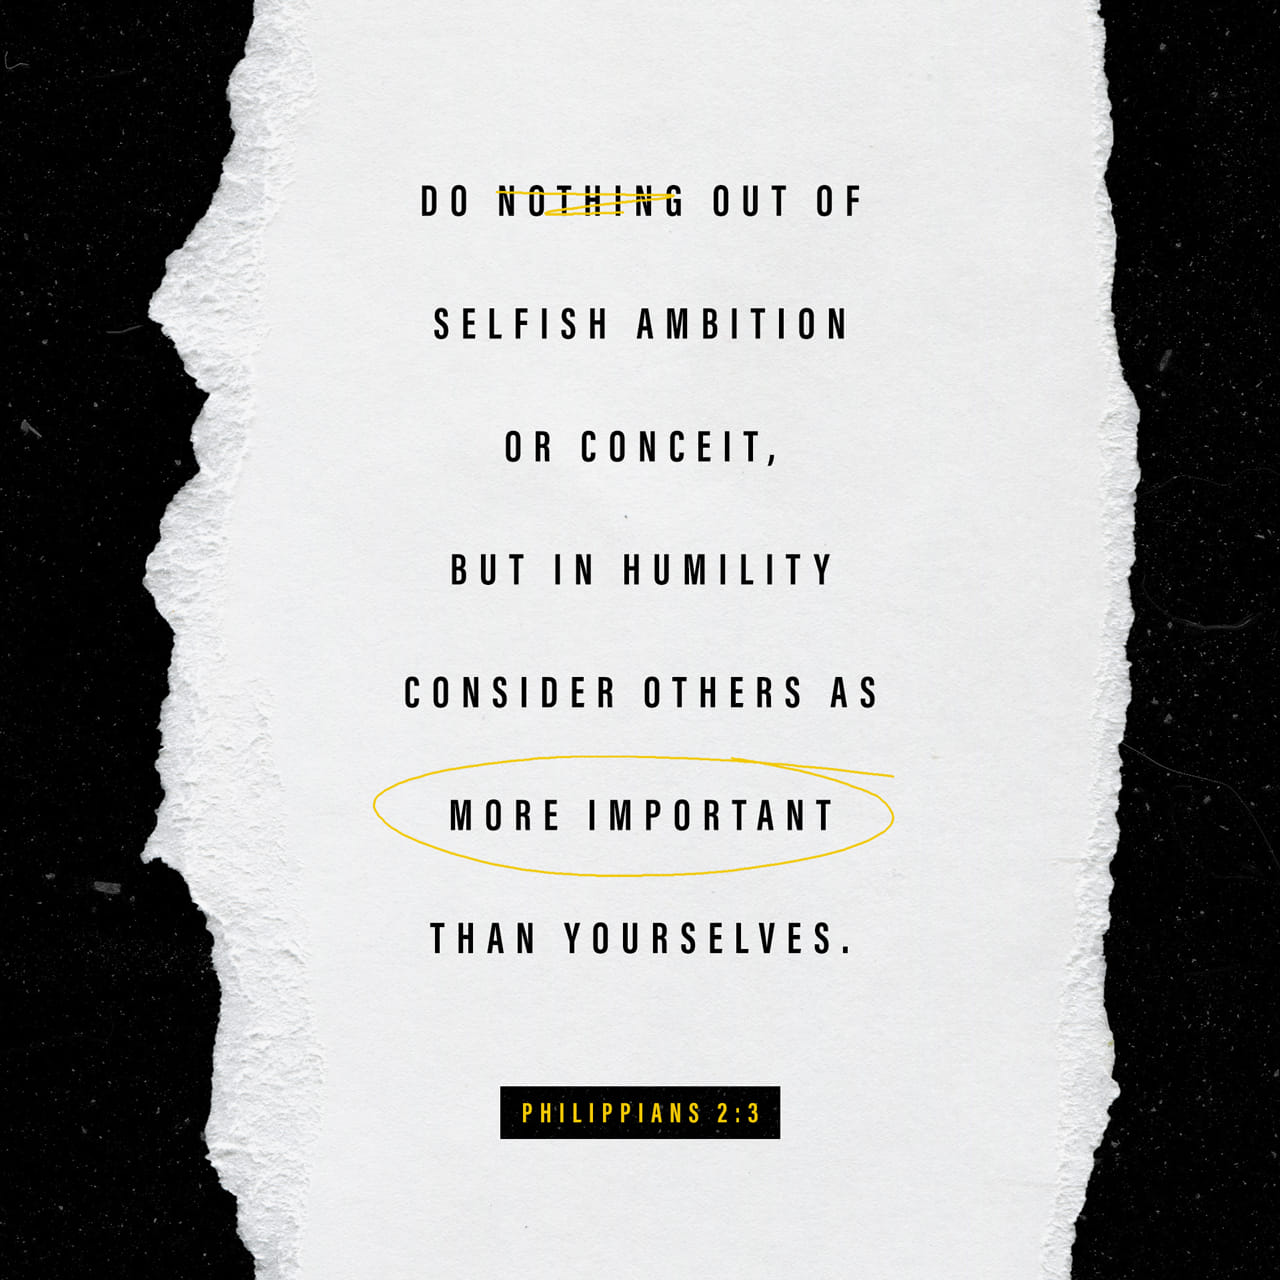 Philippians 2:3-4 Let nothing be done through strife or vainglory; but in lowliness of mind let each esteem other better than themselves. Look not every man on his own things, but every man also on the things of others | King James Version (KJV)